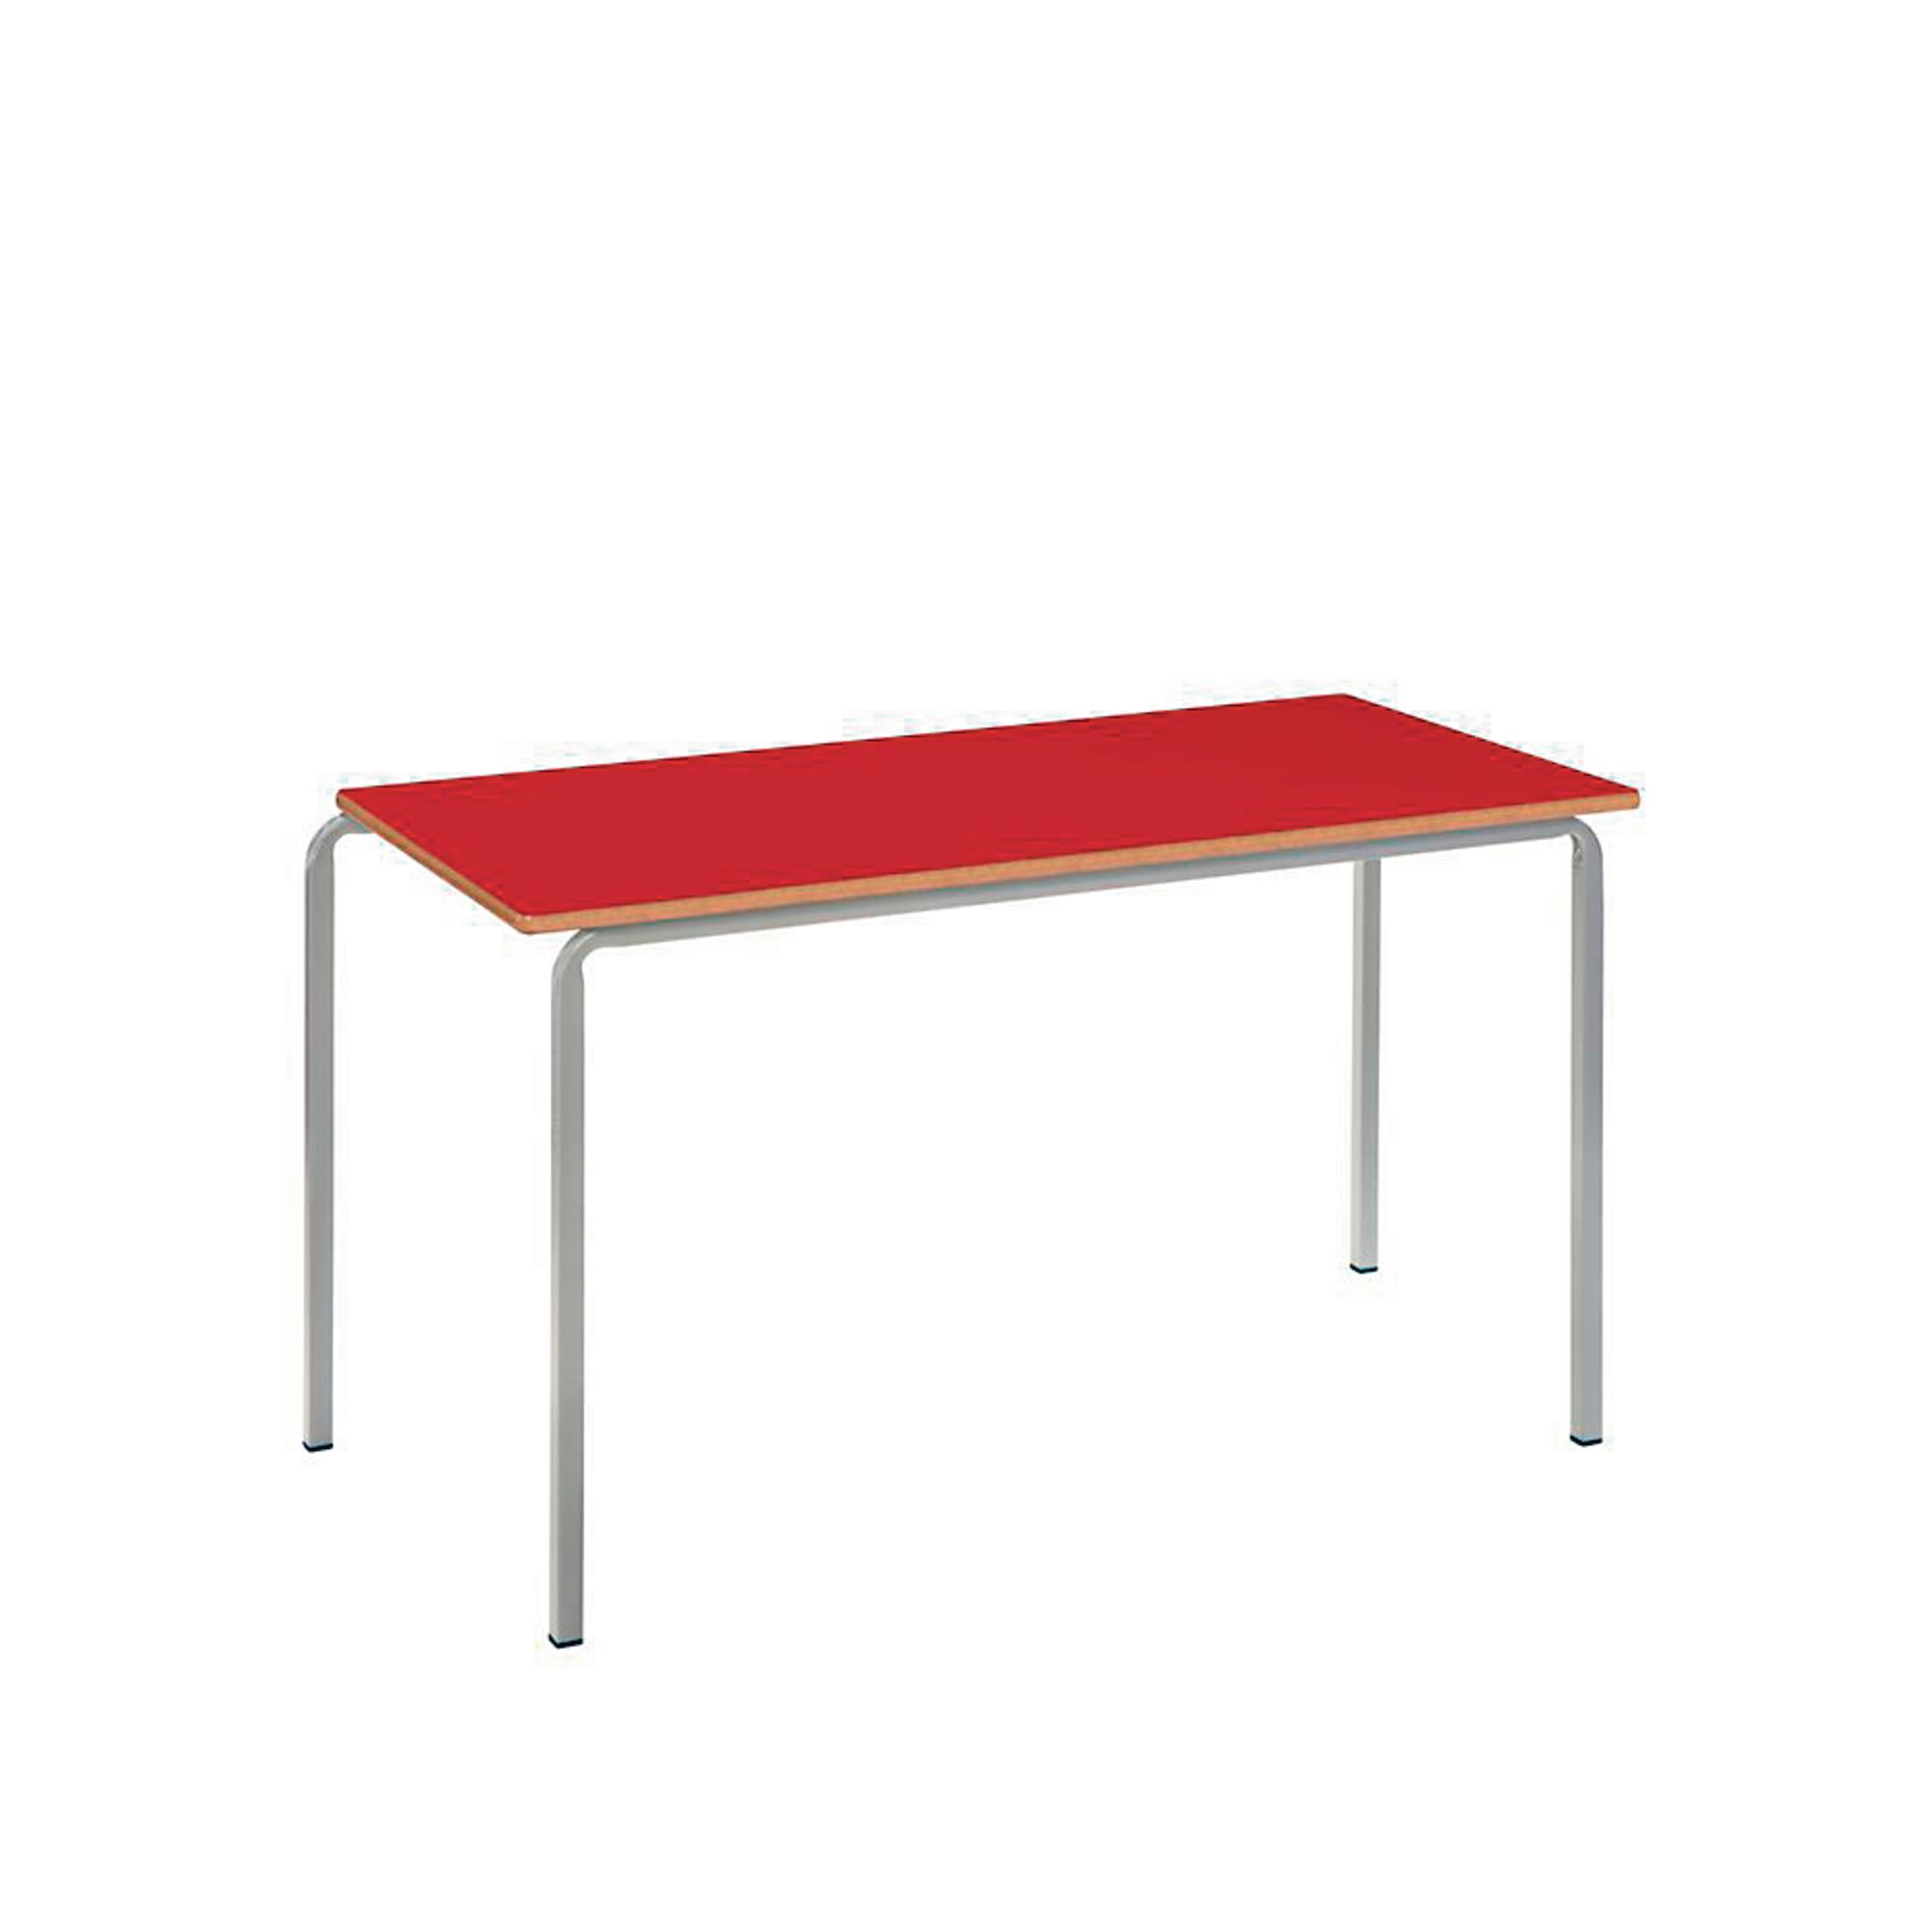 Rect Table 1200x600 CB H590 Ailsa